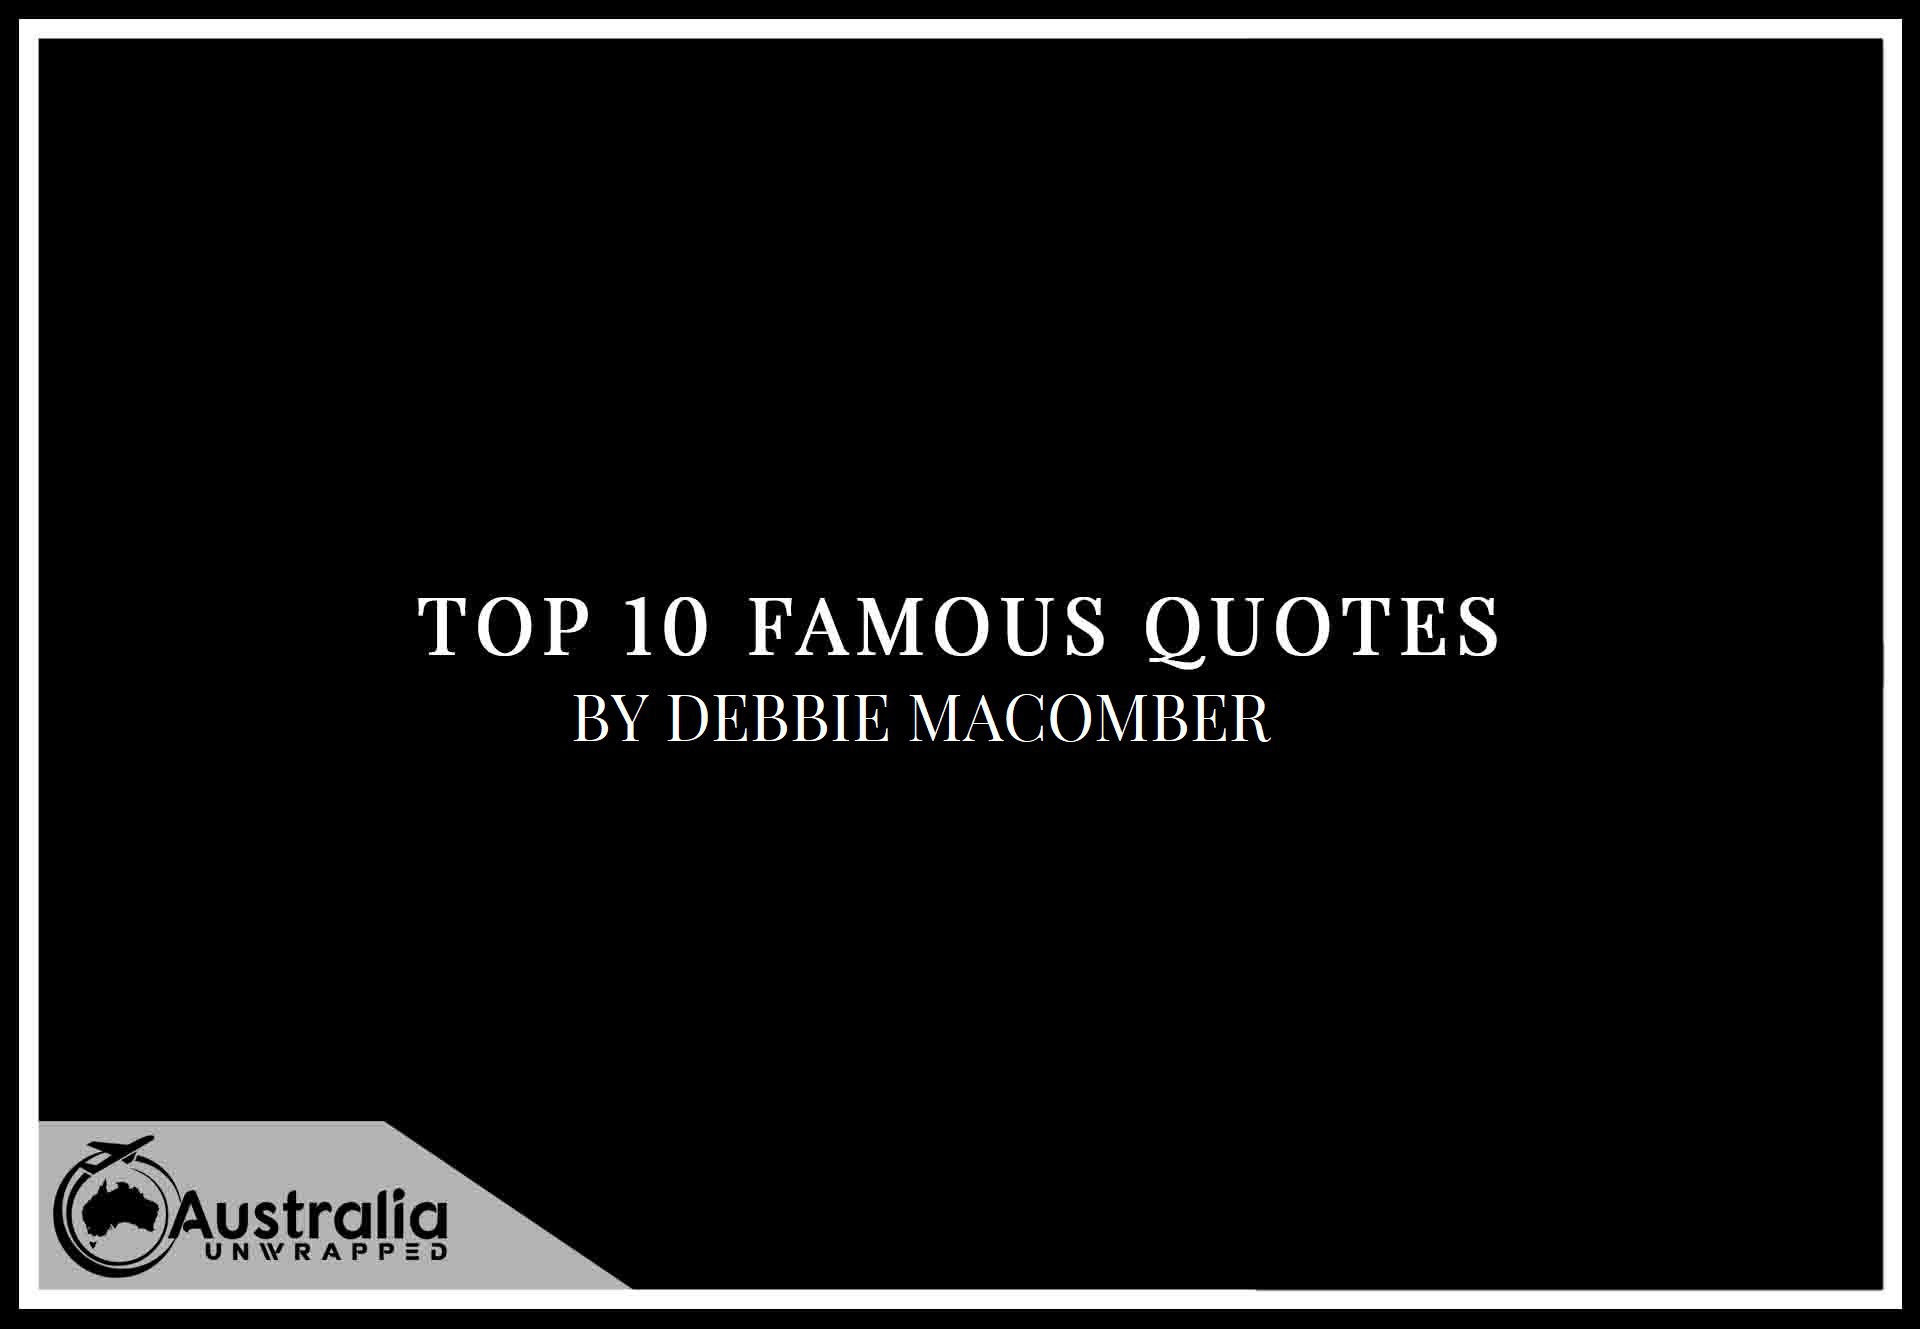 Top 10 Famous Quotes by Author Debbie Macomber